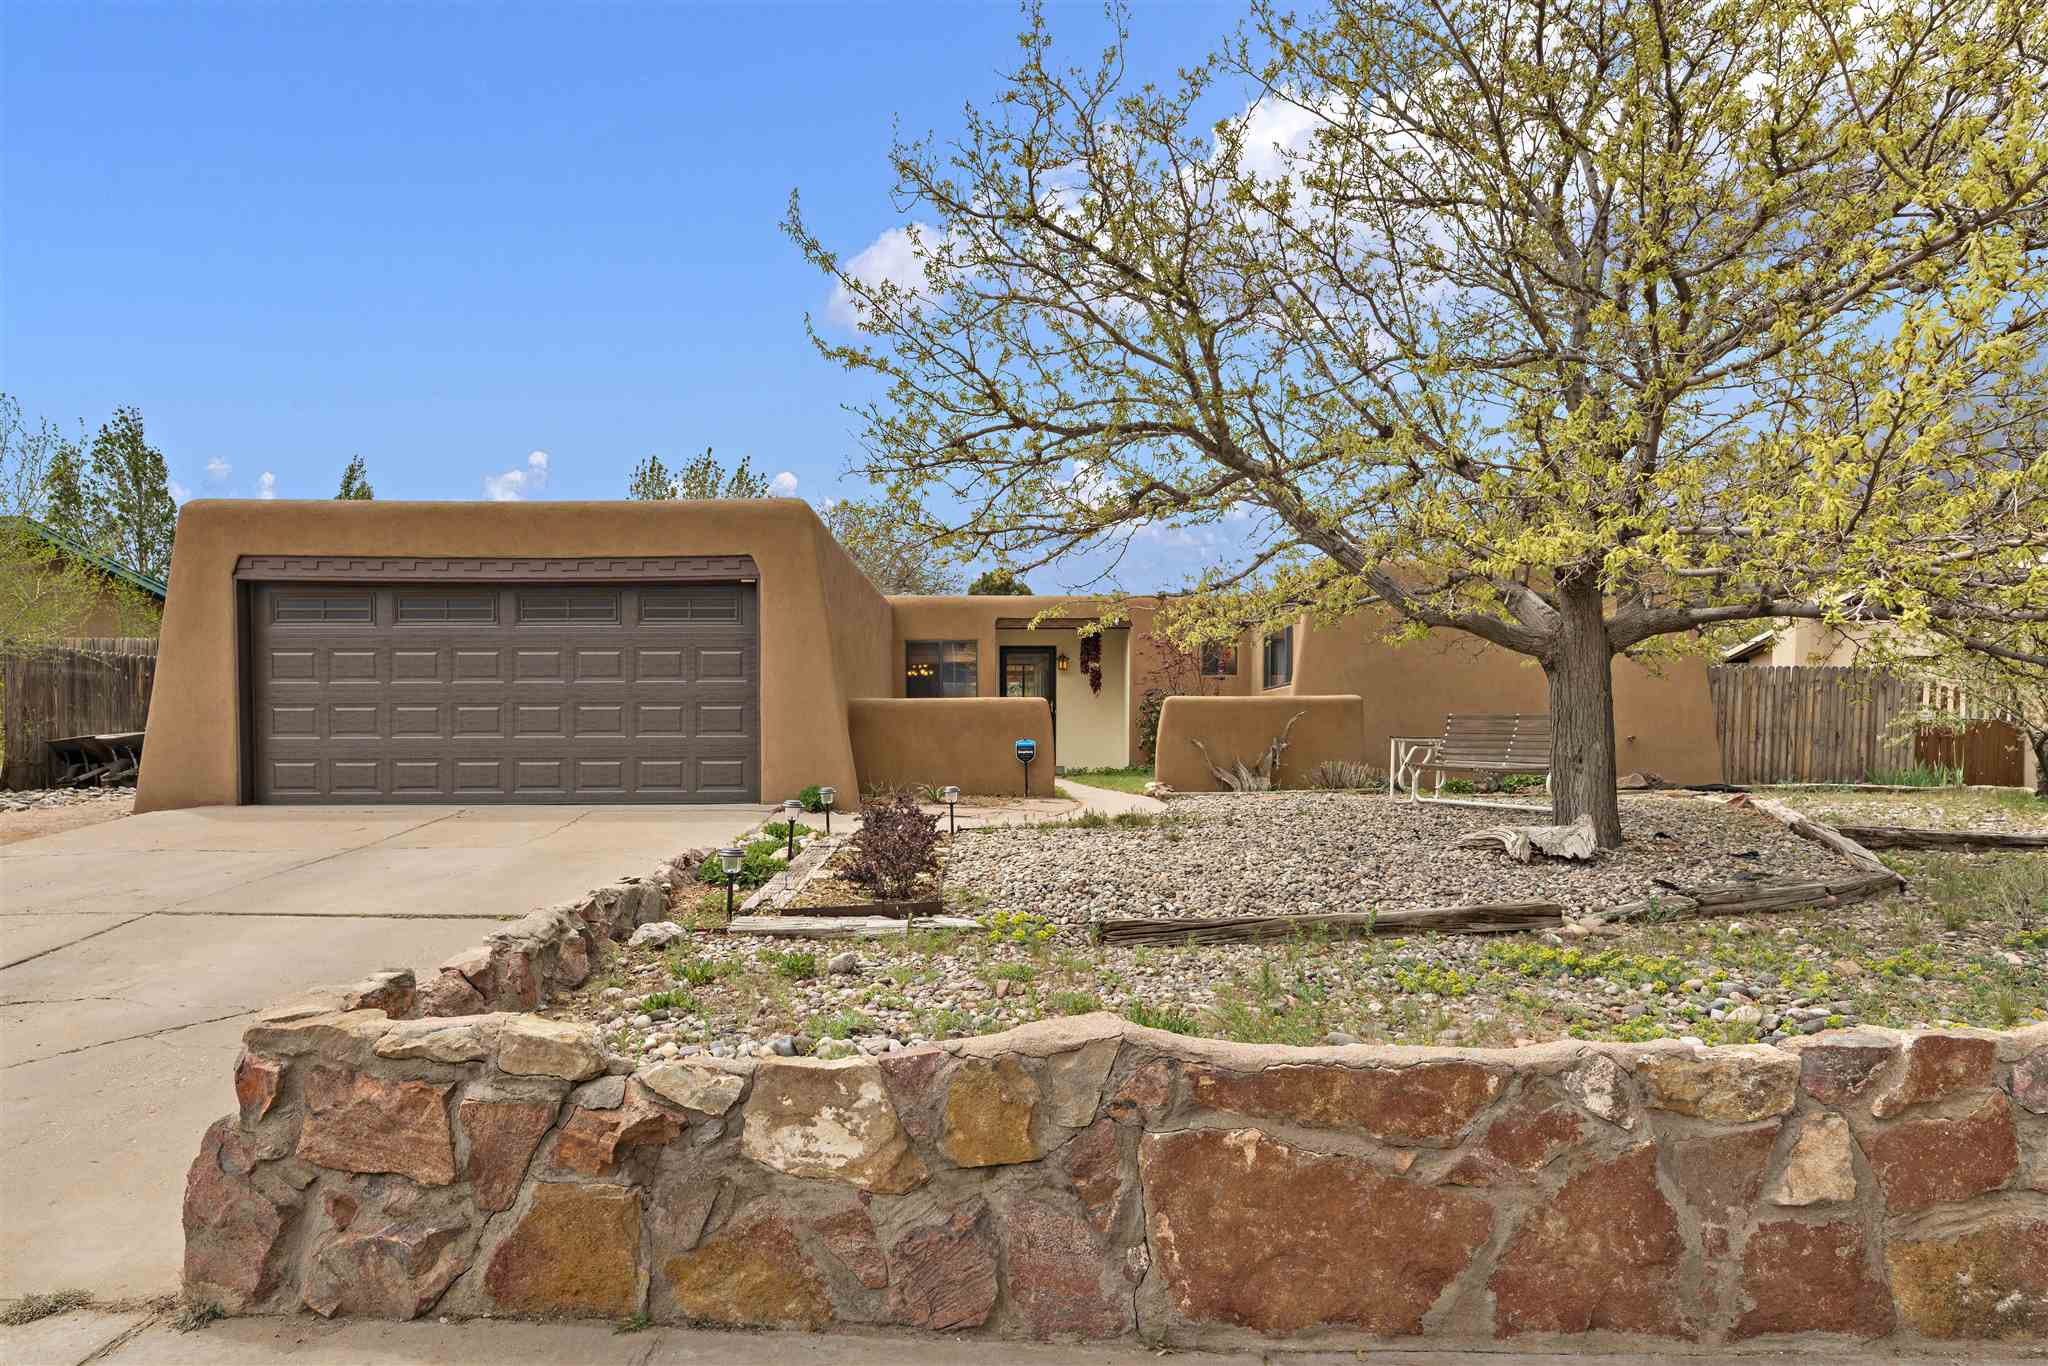 Fabulous finishes with central location. This 4 bedroom/2 bath home already has the walls blown out for an open feel. Granite counters and upgraded cabinets for a lovely, spacious kitchen. Tile floors throughout. 2 car garage.  Do yourself a favor and visit this lovely, easy to see home quickly.